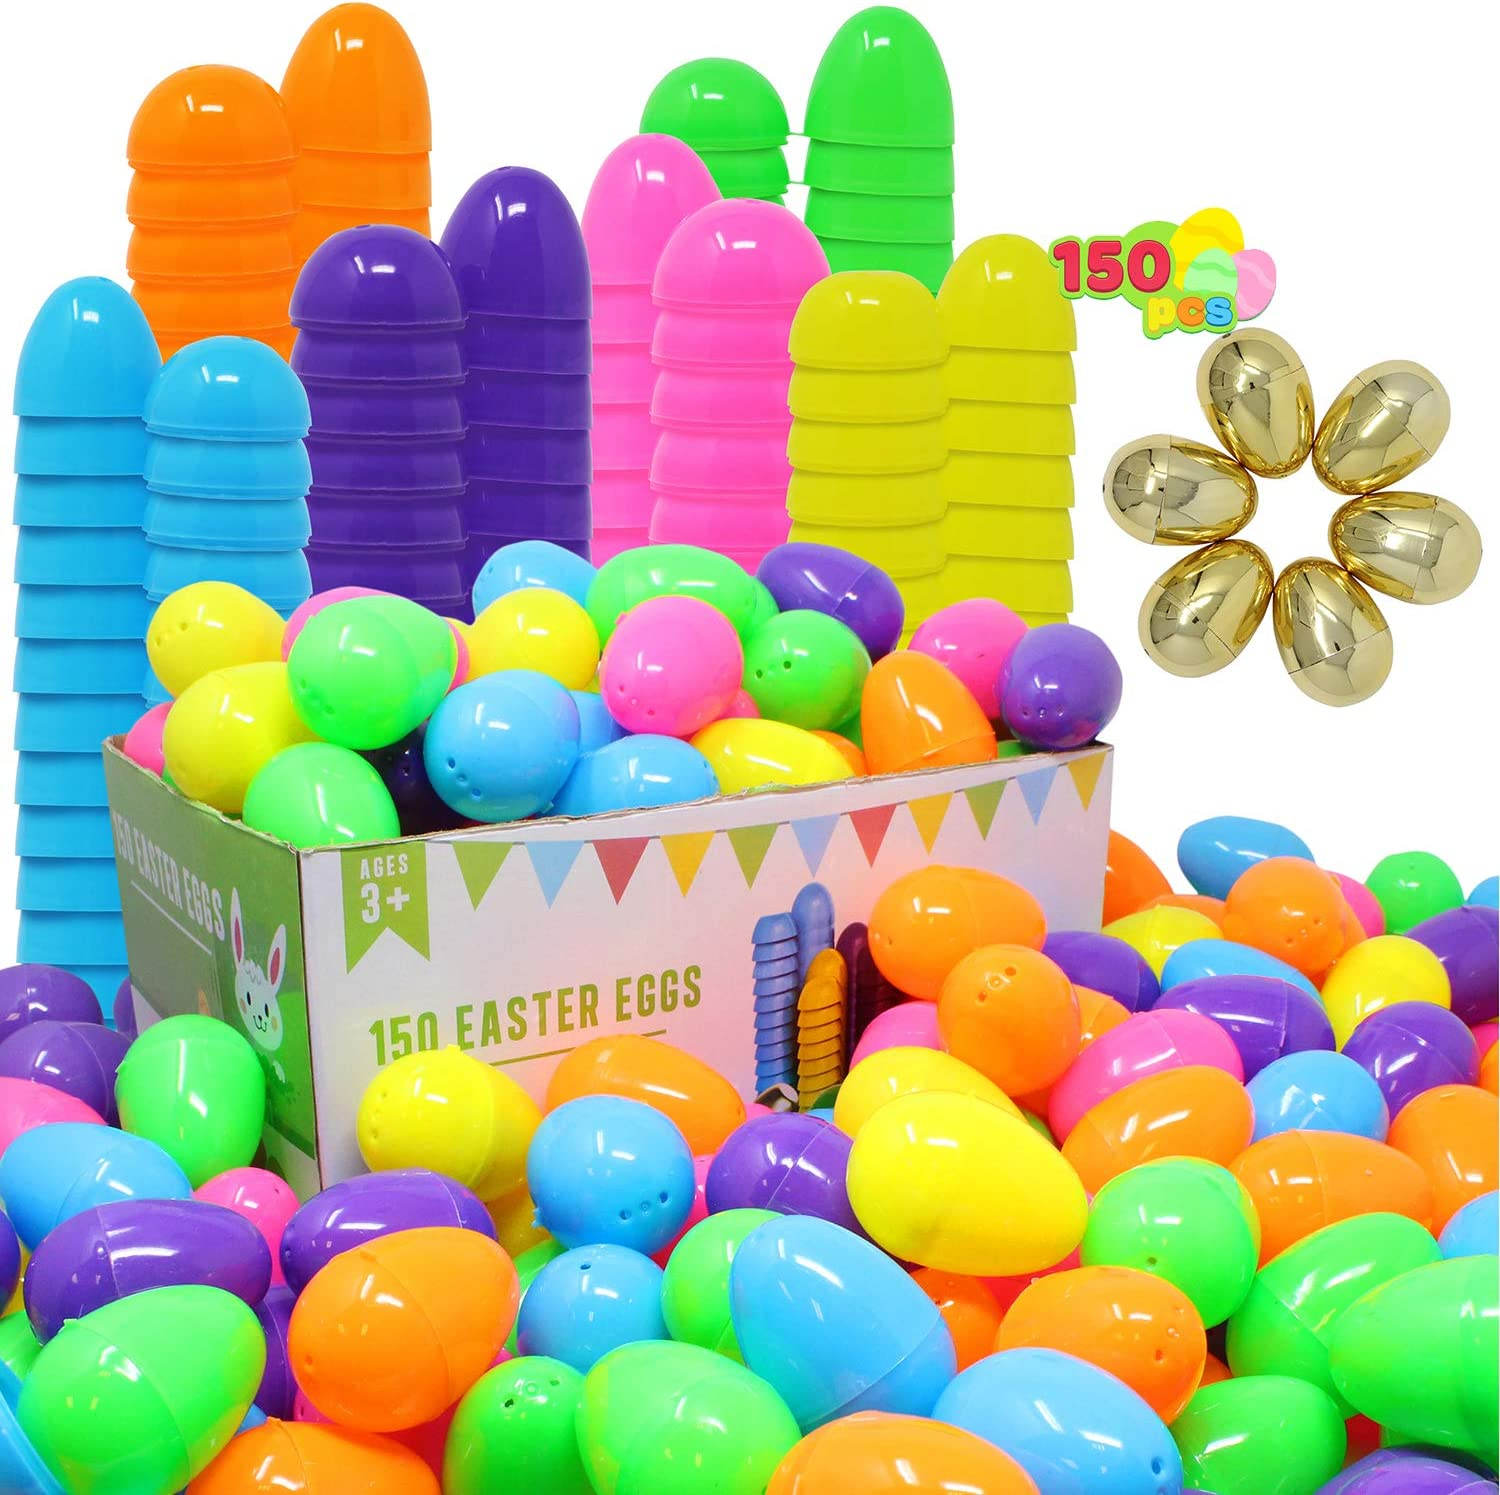 Joyin 144 Pieces 2 3 8 Easter Eggs 6 Golden Eggs For Filling Specific Treats Easter Theme Party Favor Easter Eggs Hunt Basket Stuffers Filler Classroom Prize Supplies Toy Toys Games